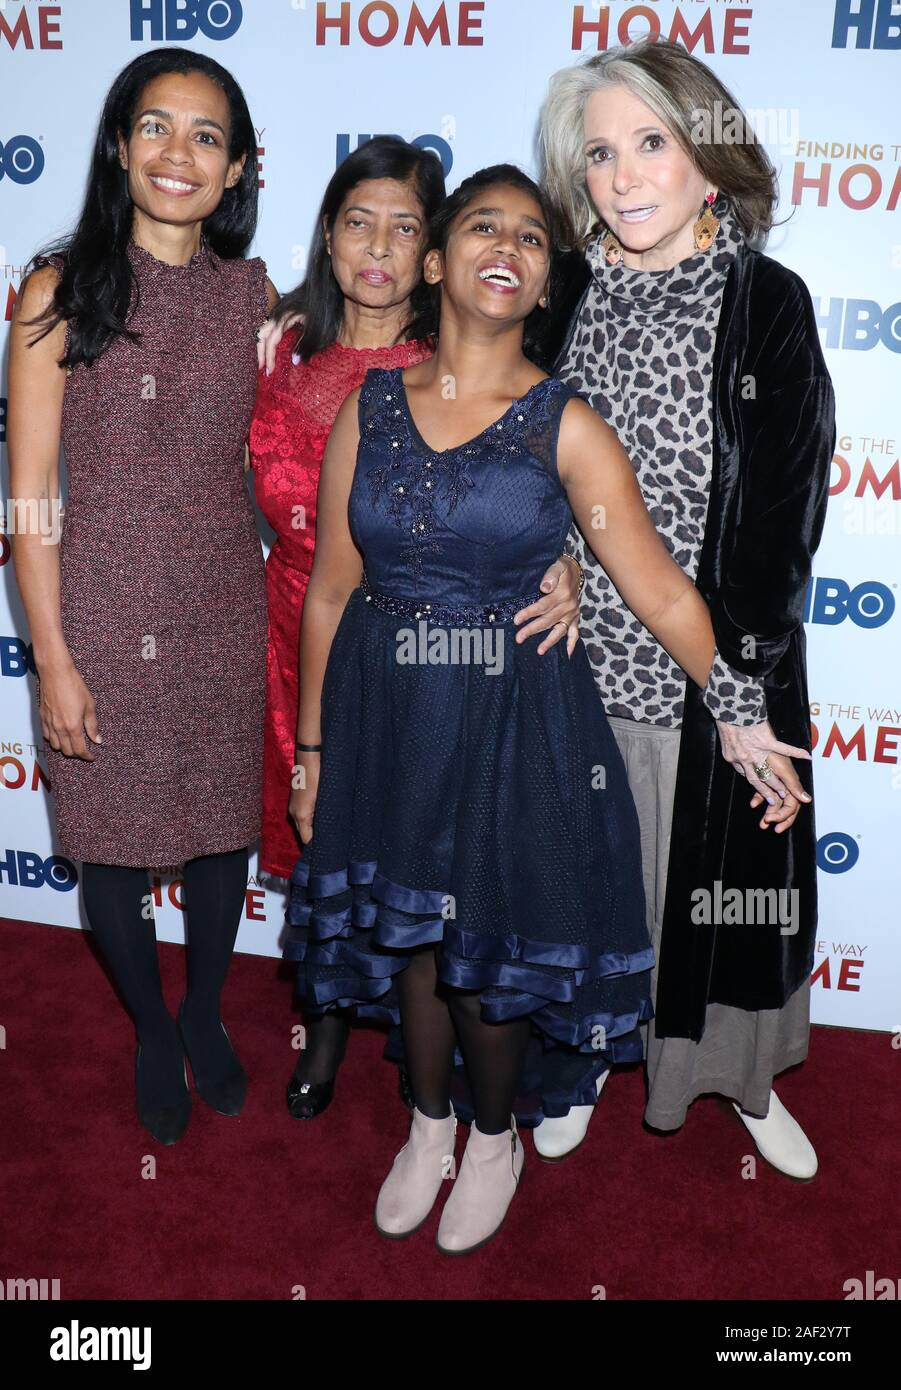 New York, USA. 11th December, 2019. Jacqueline Glove, Maria Fernandez, Livya Dsouza, Sheila Nevins, attend HBO Docunentary Fims presents premiere of Finding The Way Home at 30 Hudson Yards in NewYork. Credit: RW/MediaPunch Stock Photo